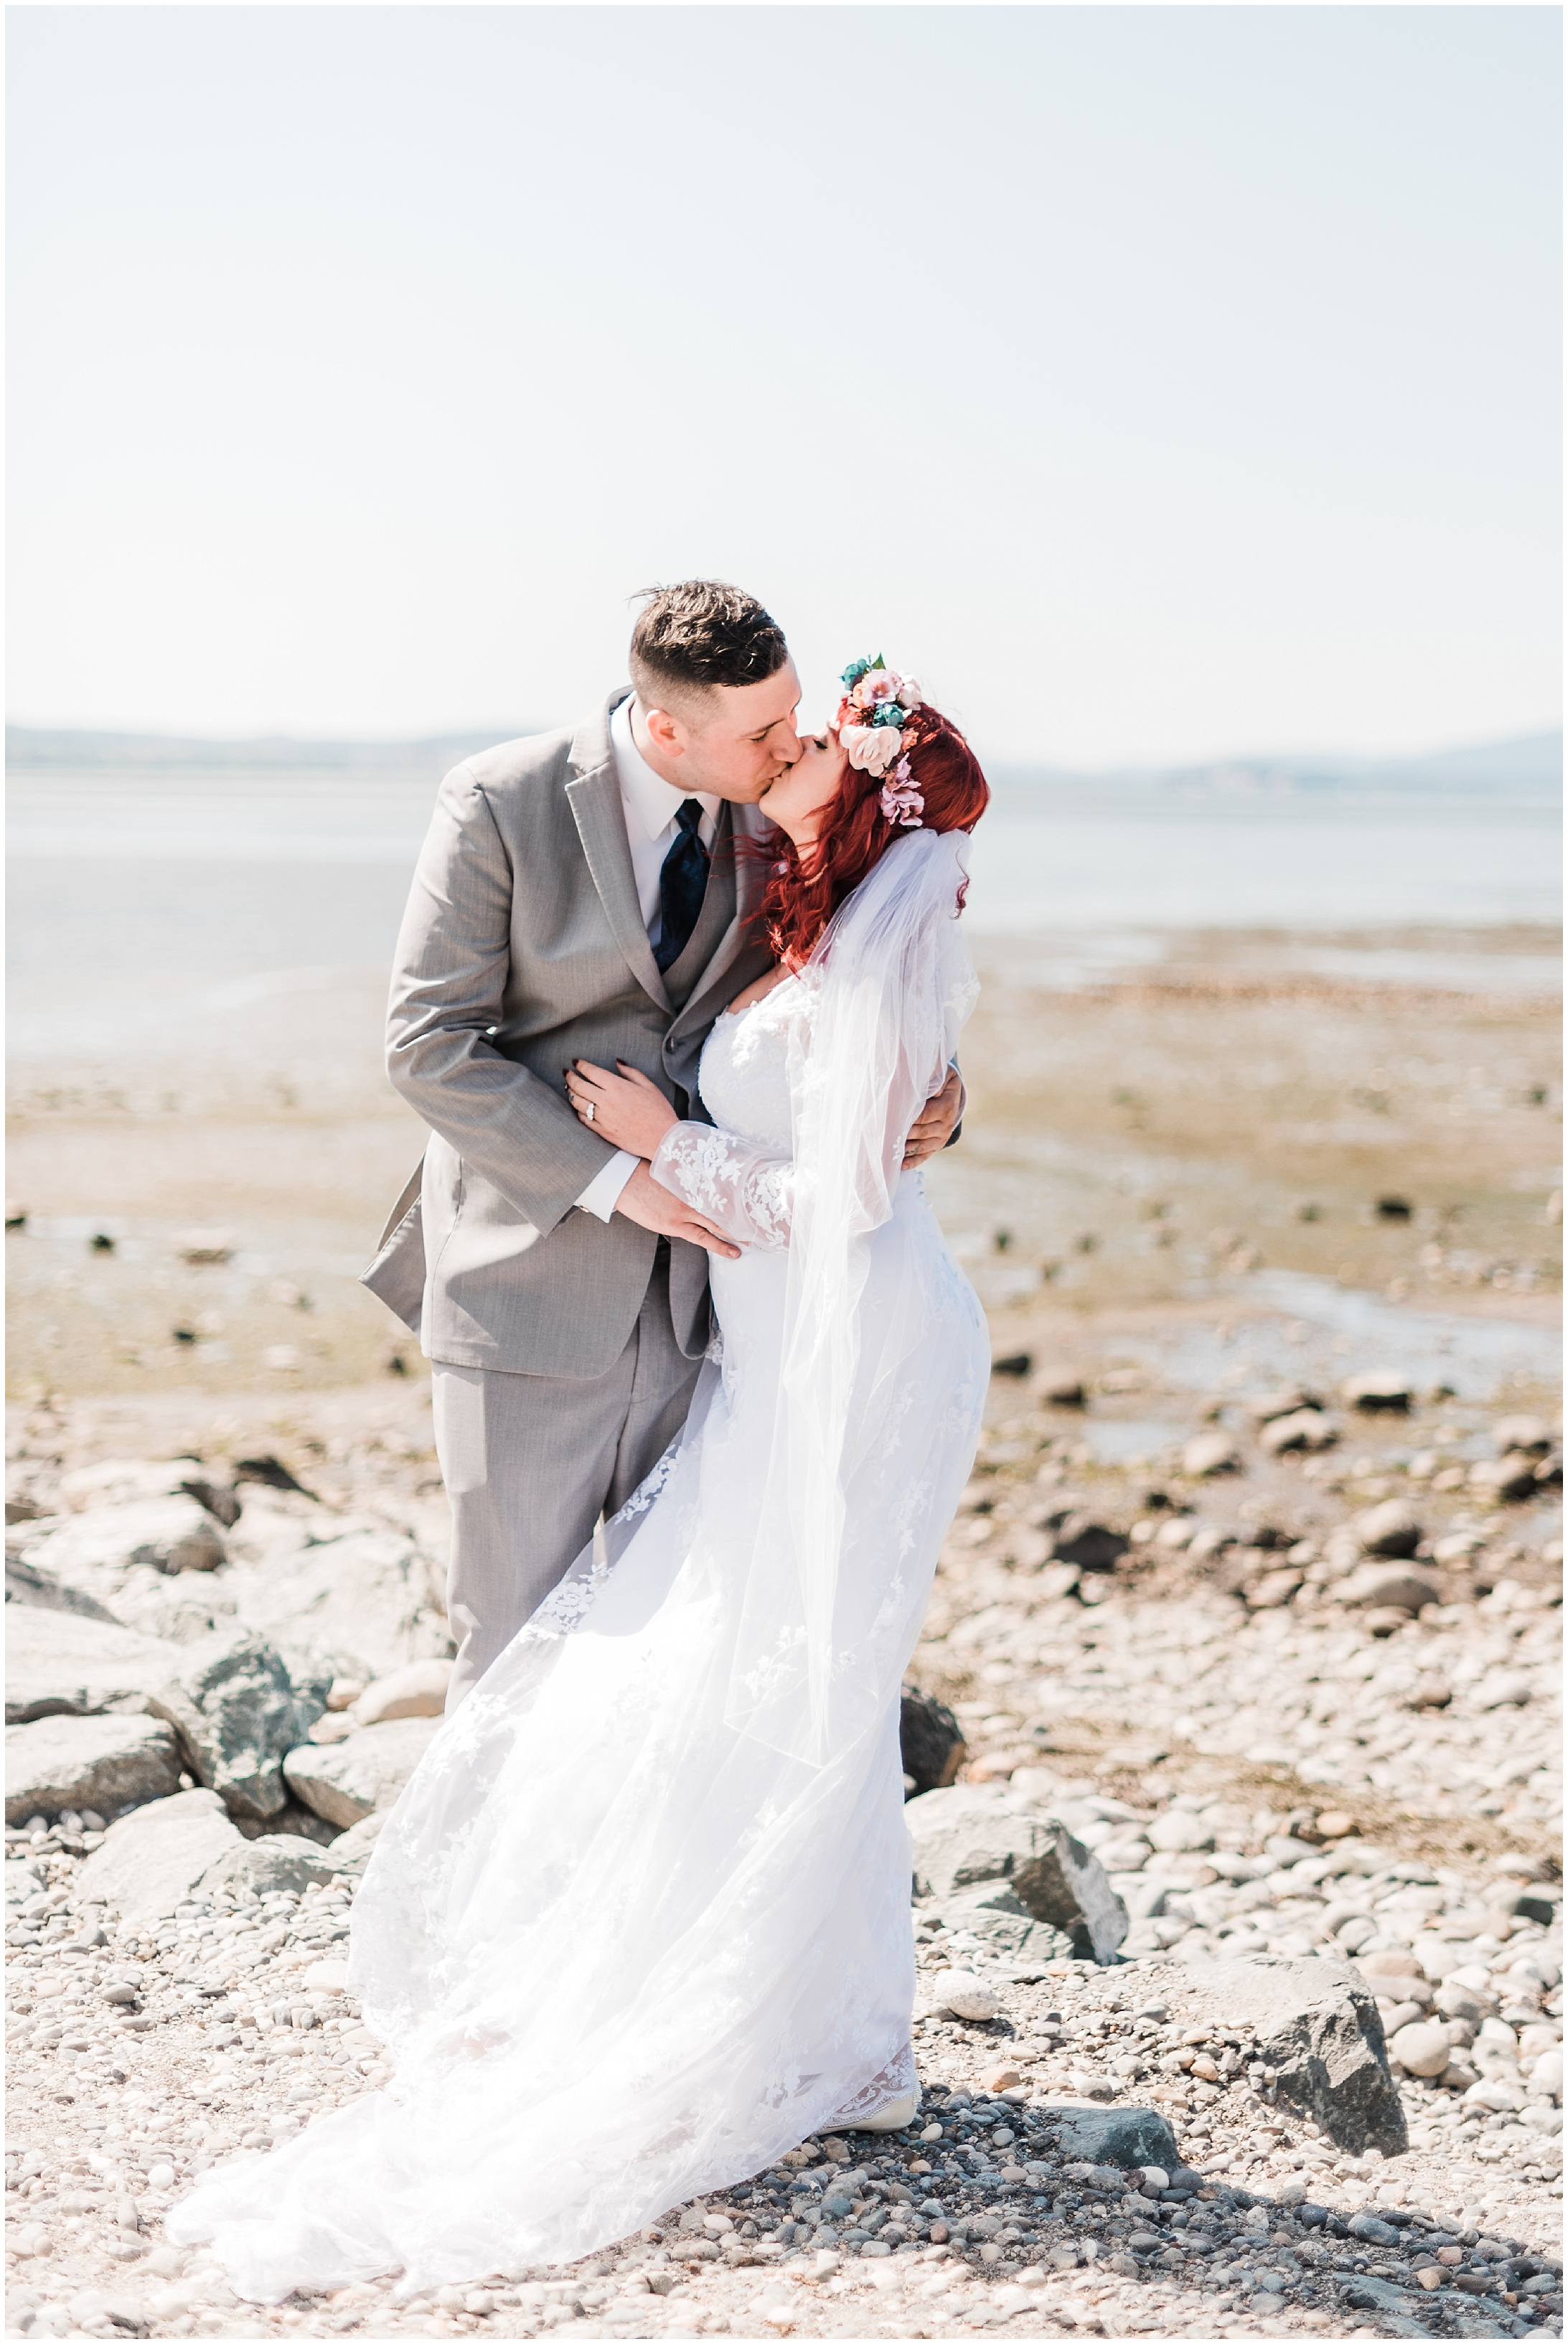 Photo of a bride and groom kissing on a windy, rocky beach at low tide